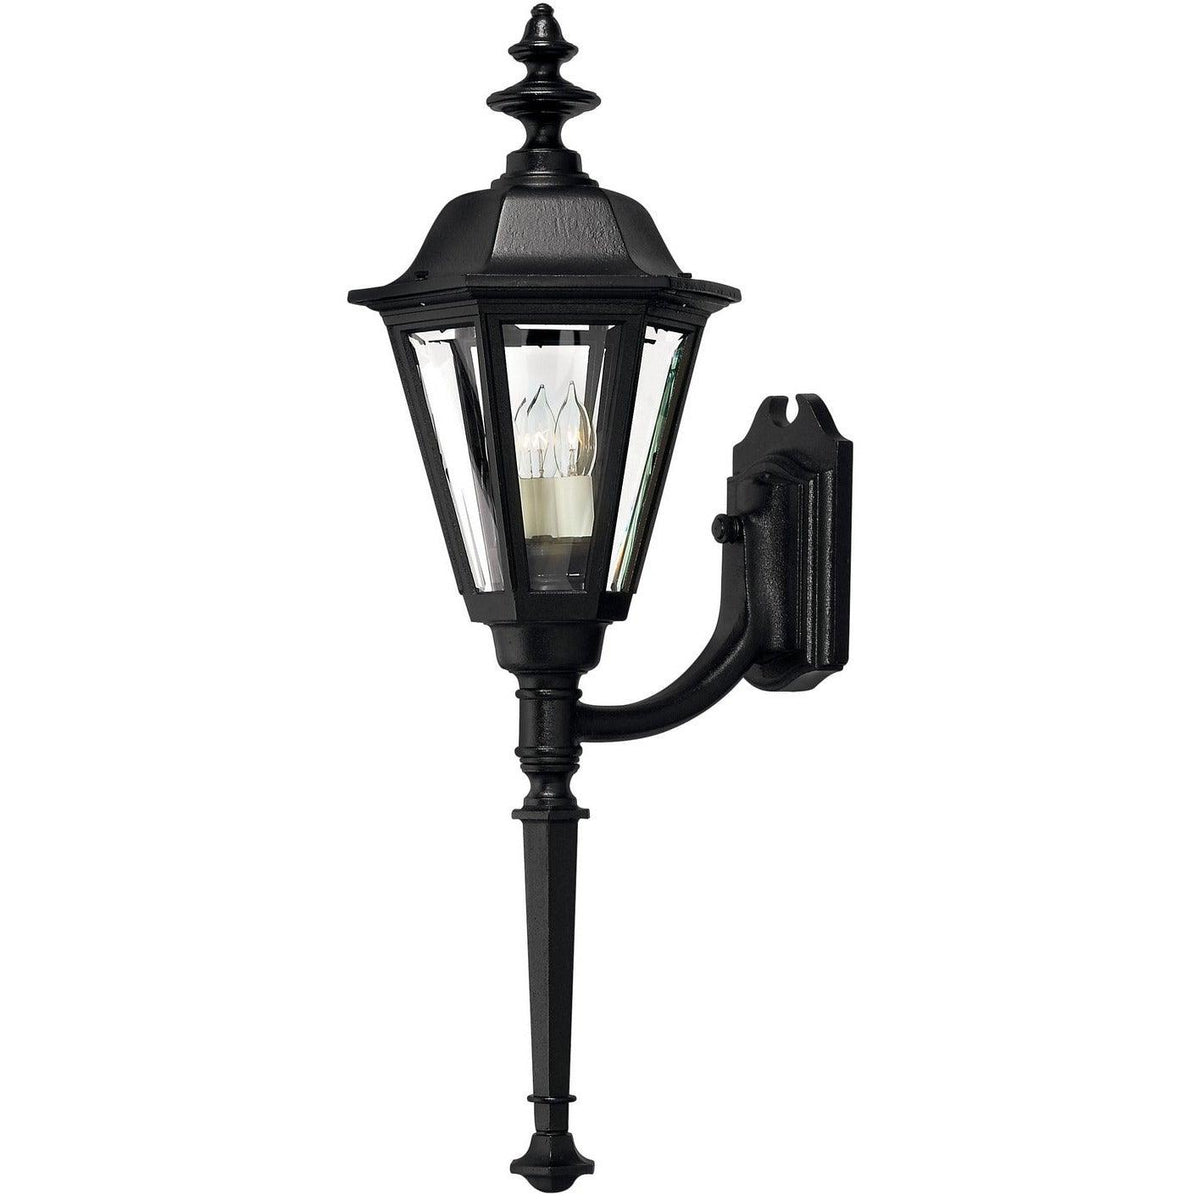 Hinkley Canada - 1440BK - One Light Wall Mount - Manor House - Black